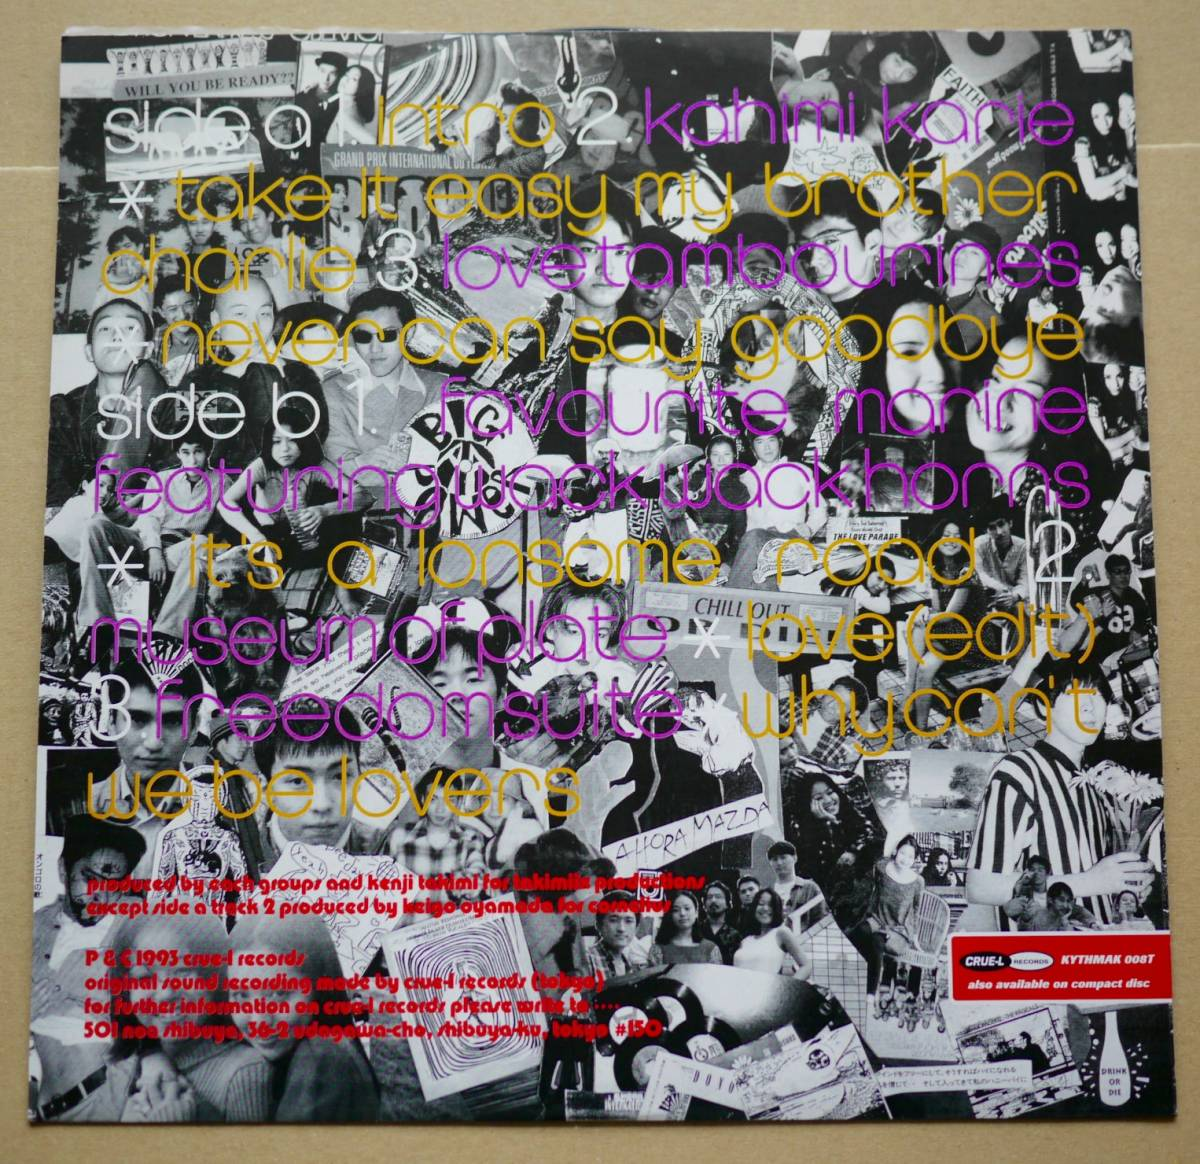 LP★V.A./Hello Young Lovers / Kahimi Karie / Love Tambourines バスキア Basquiat カヒミ・カリィ/ラブ・タンバリンズ 1993年_画像2